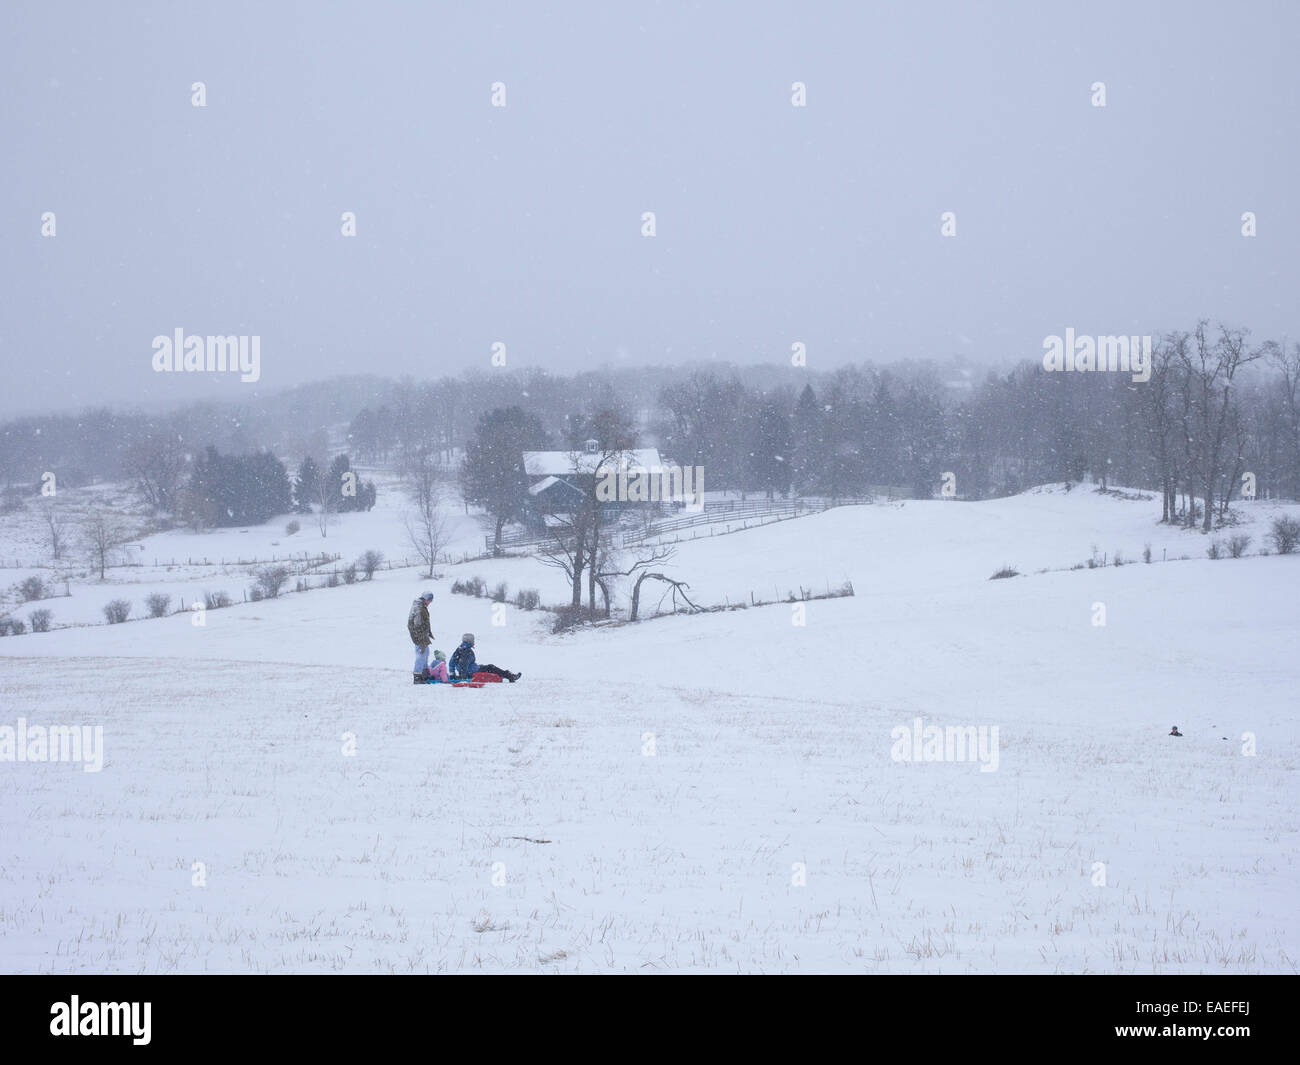 sleigh riders in country side - Stock Image